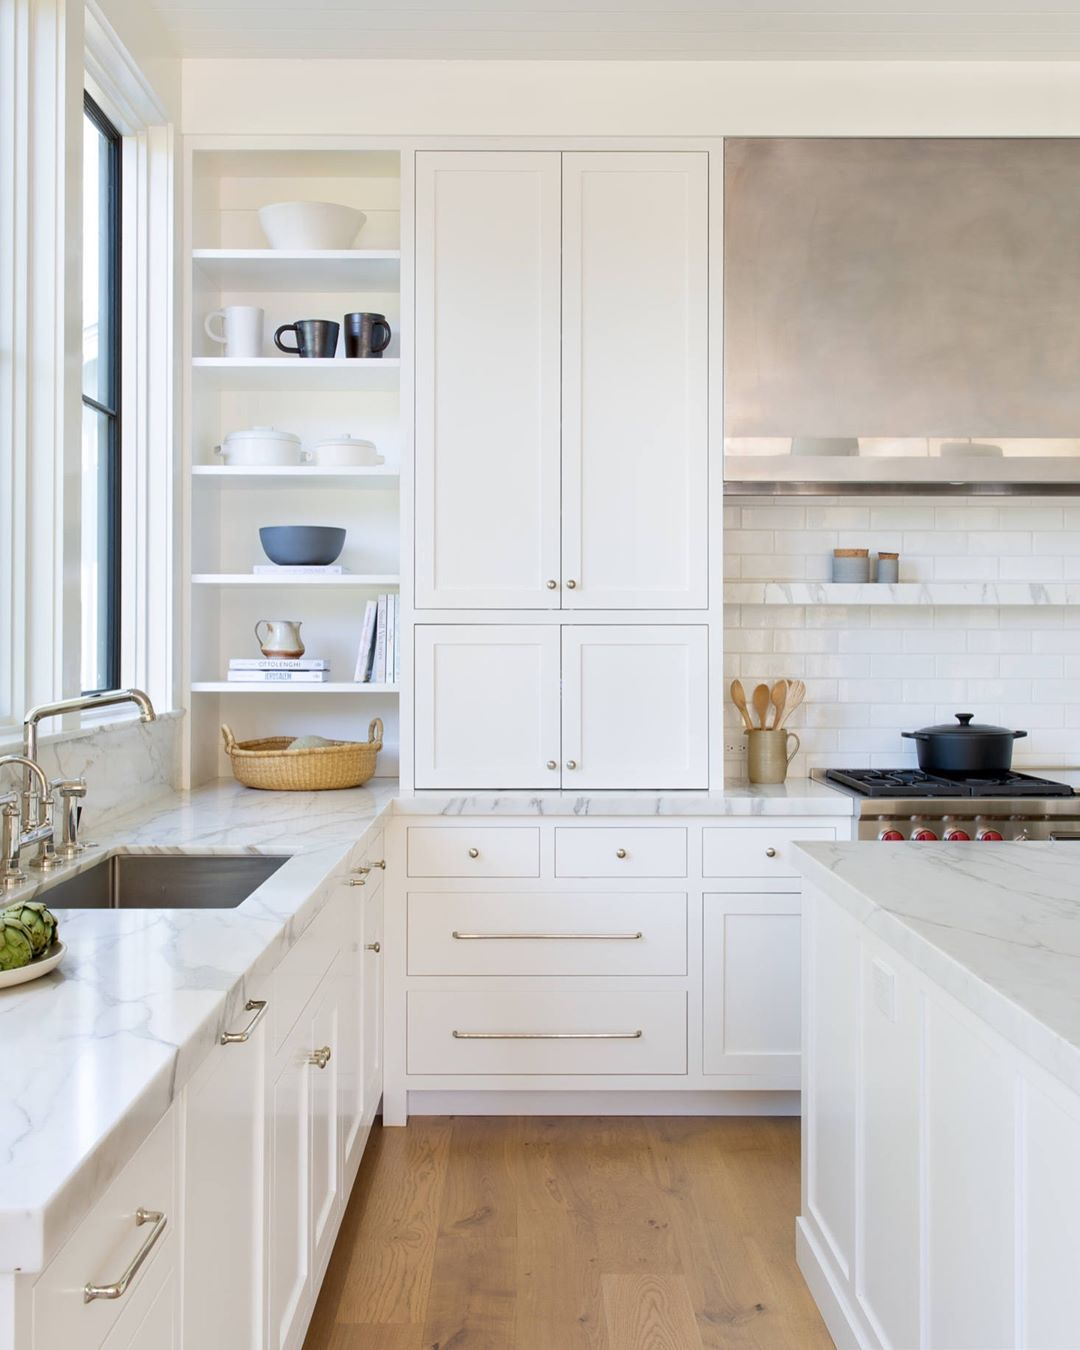 Just A Bright Sunny Kitchen For Your Wednesday Architecture By Richardsonarchitects Kitchen Inspiration Design White Kitchen Design Kitchen Cabinetry